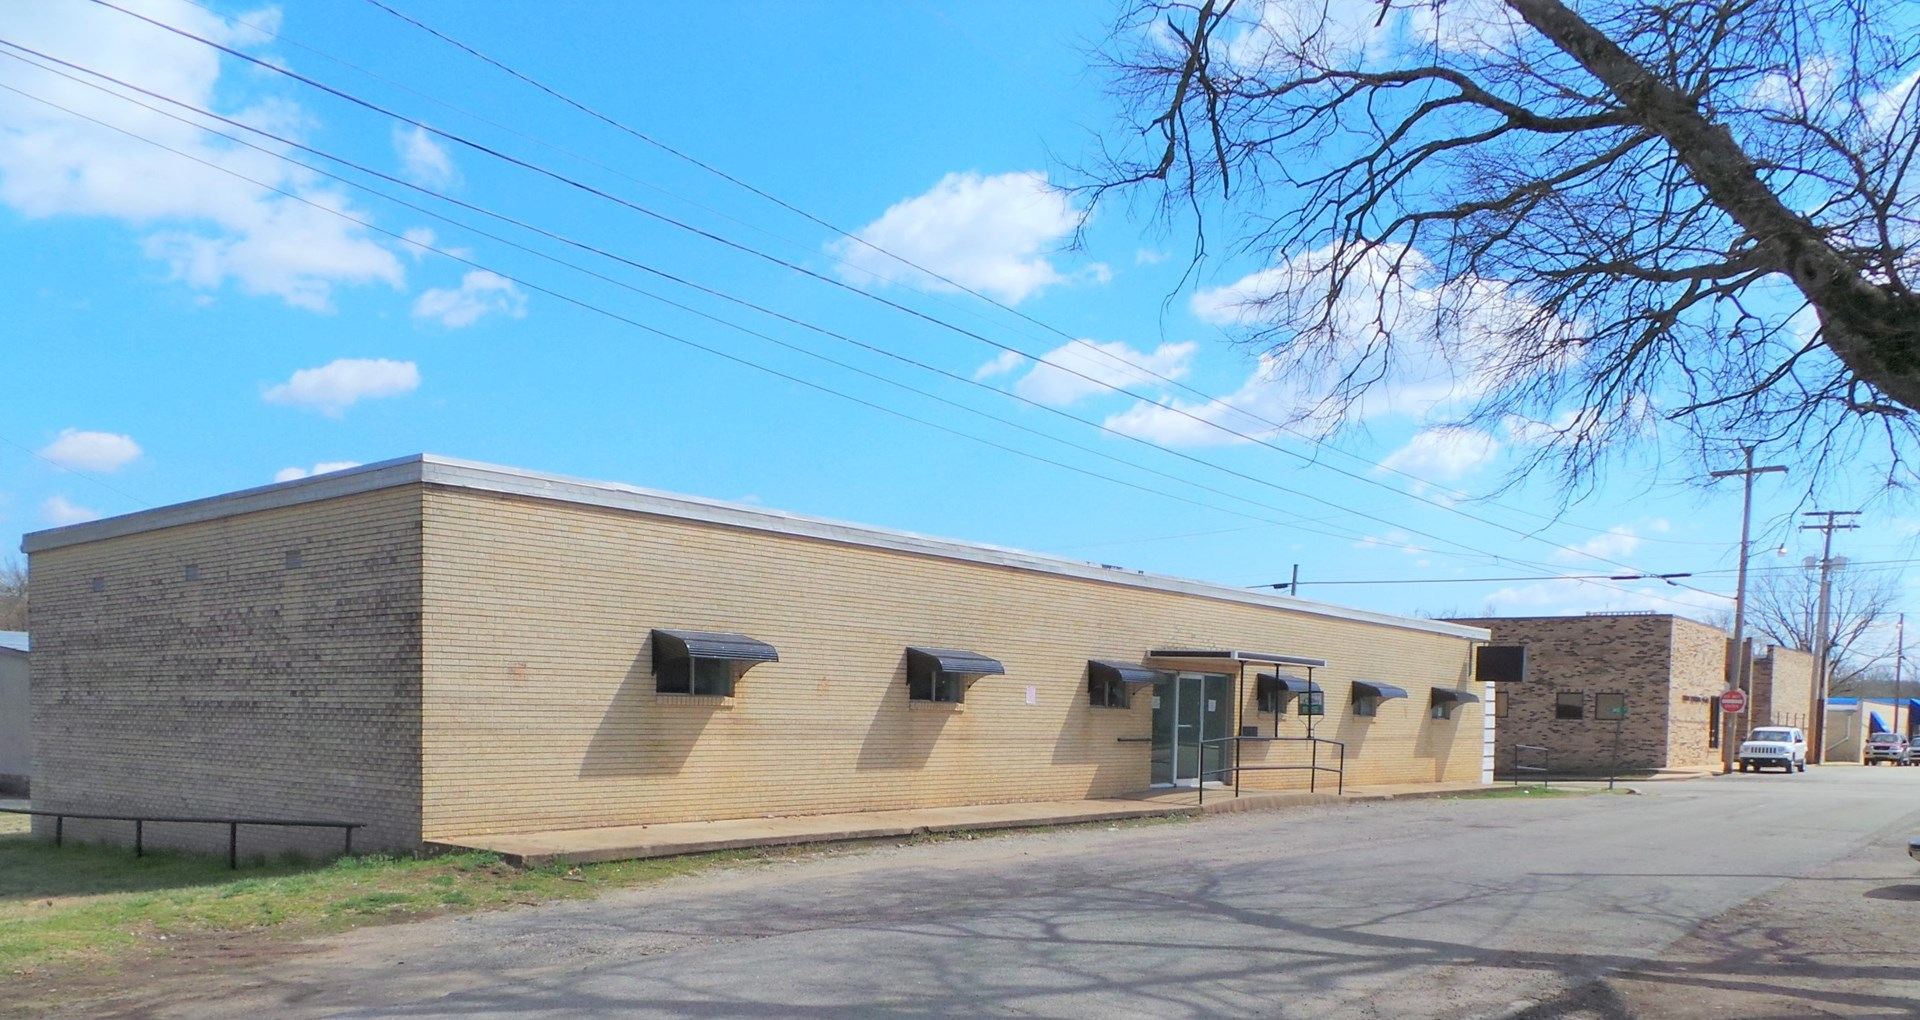 OFFICE BUILDING IN YELLVILLE, AR FOR SALE